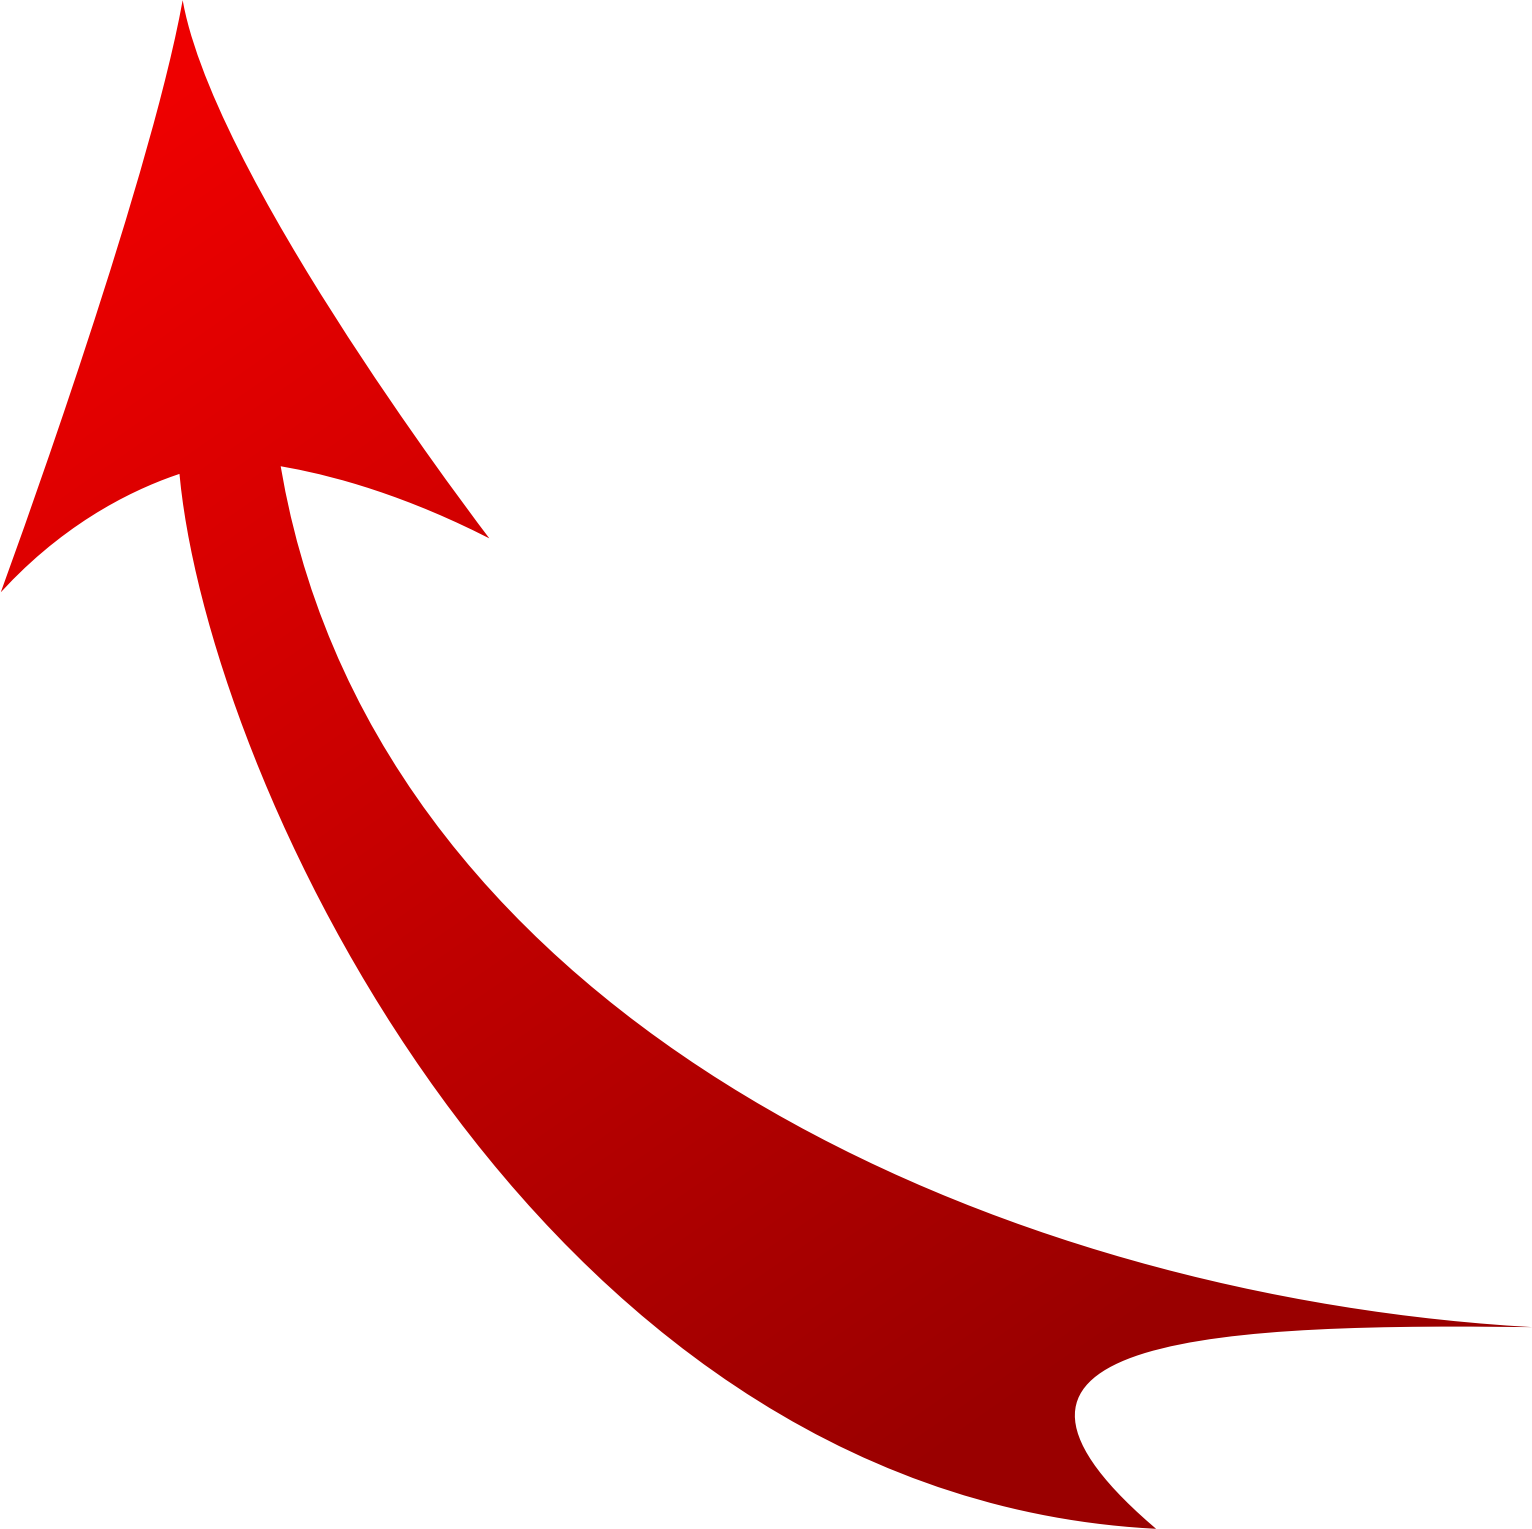 Vector curve red. Free curved arrow image